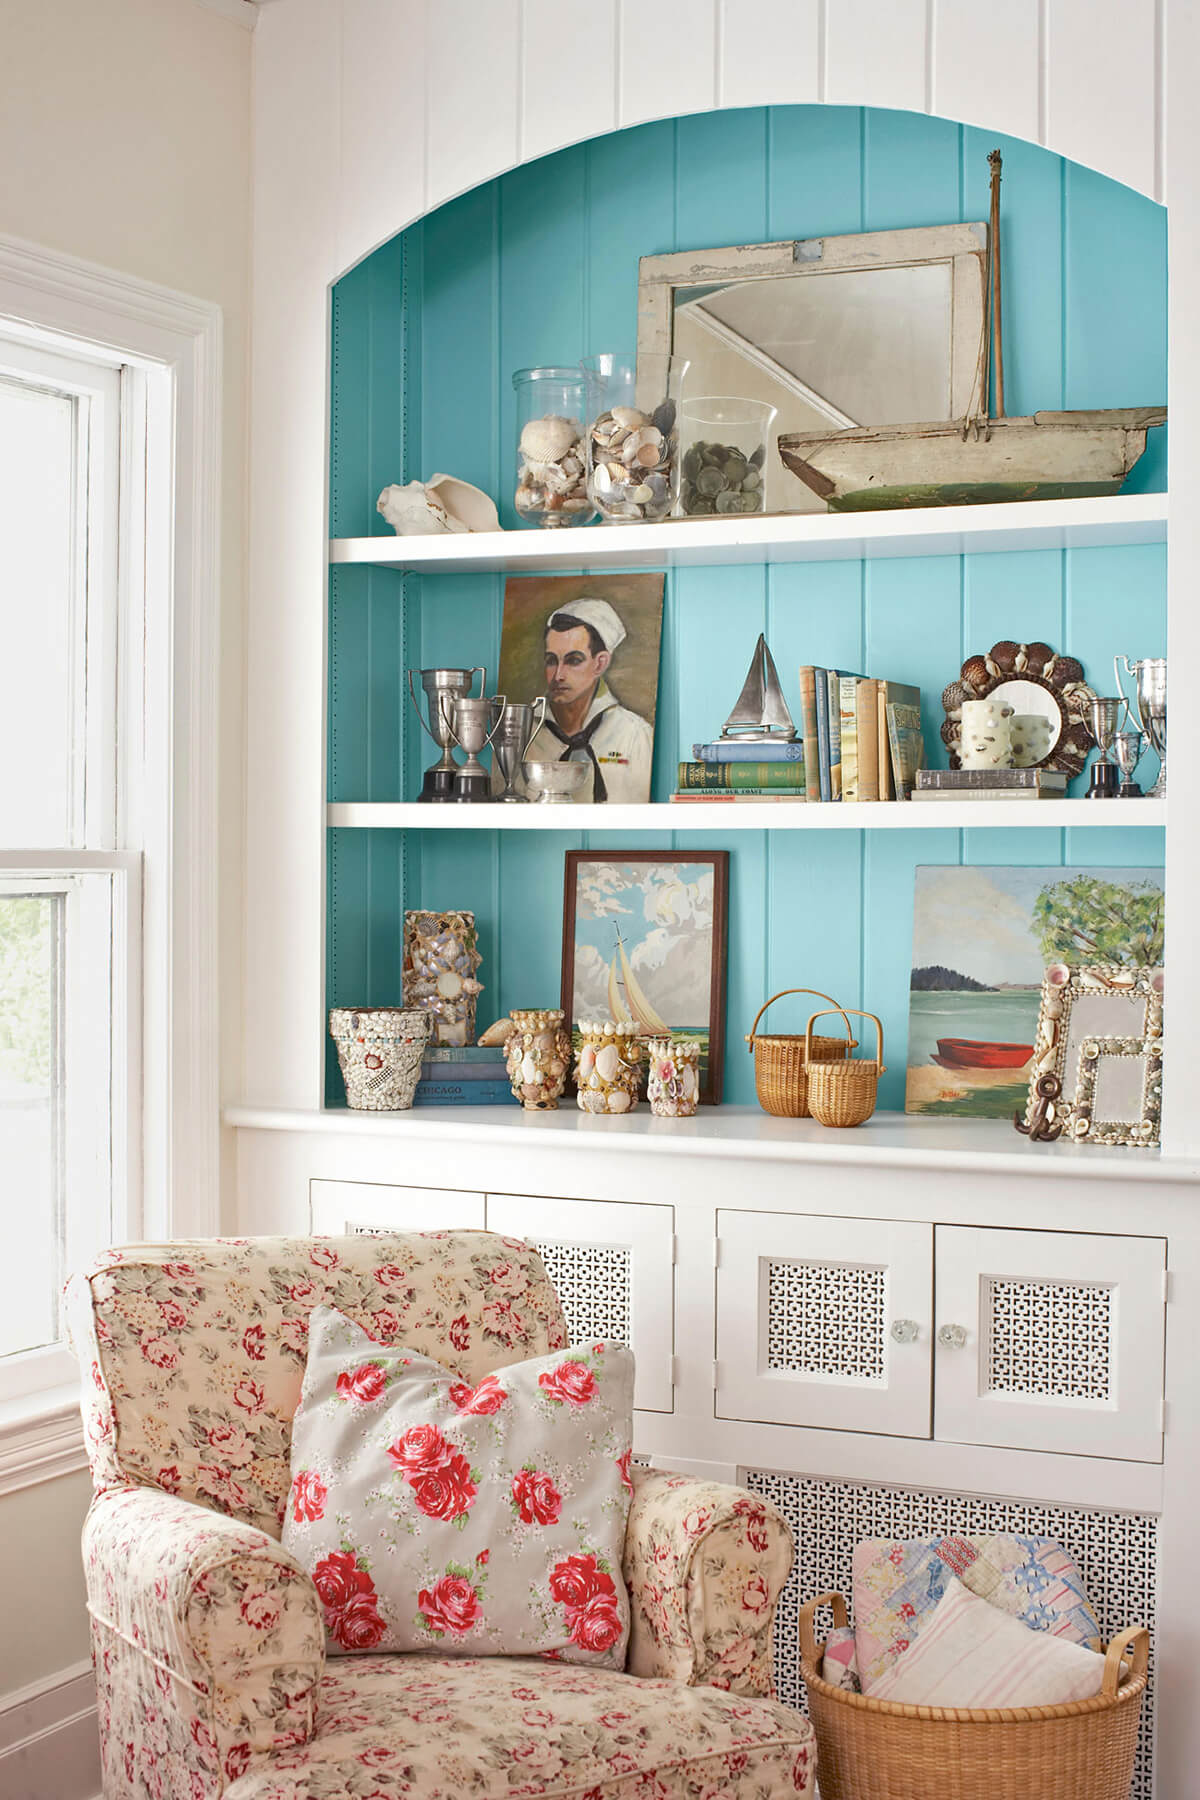 3. Shelf Storage For Favorites From The Sea